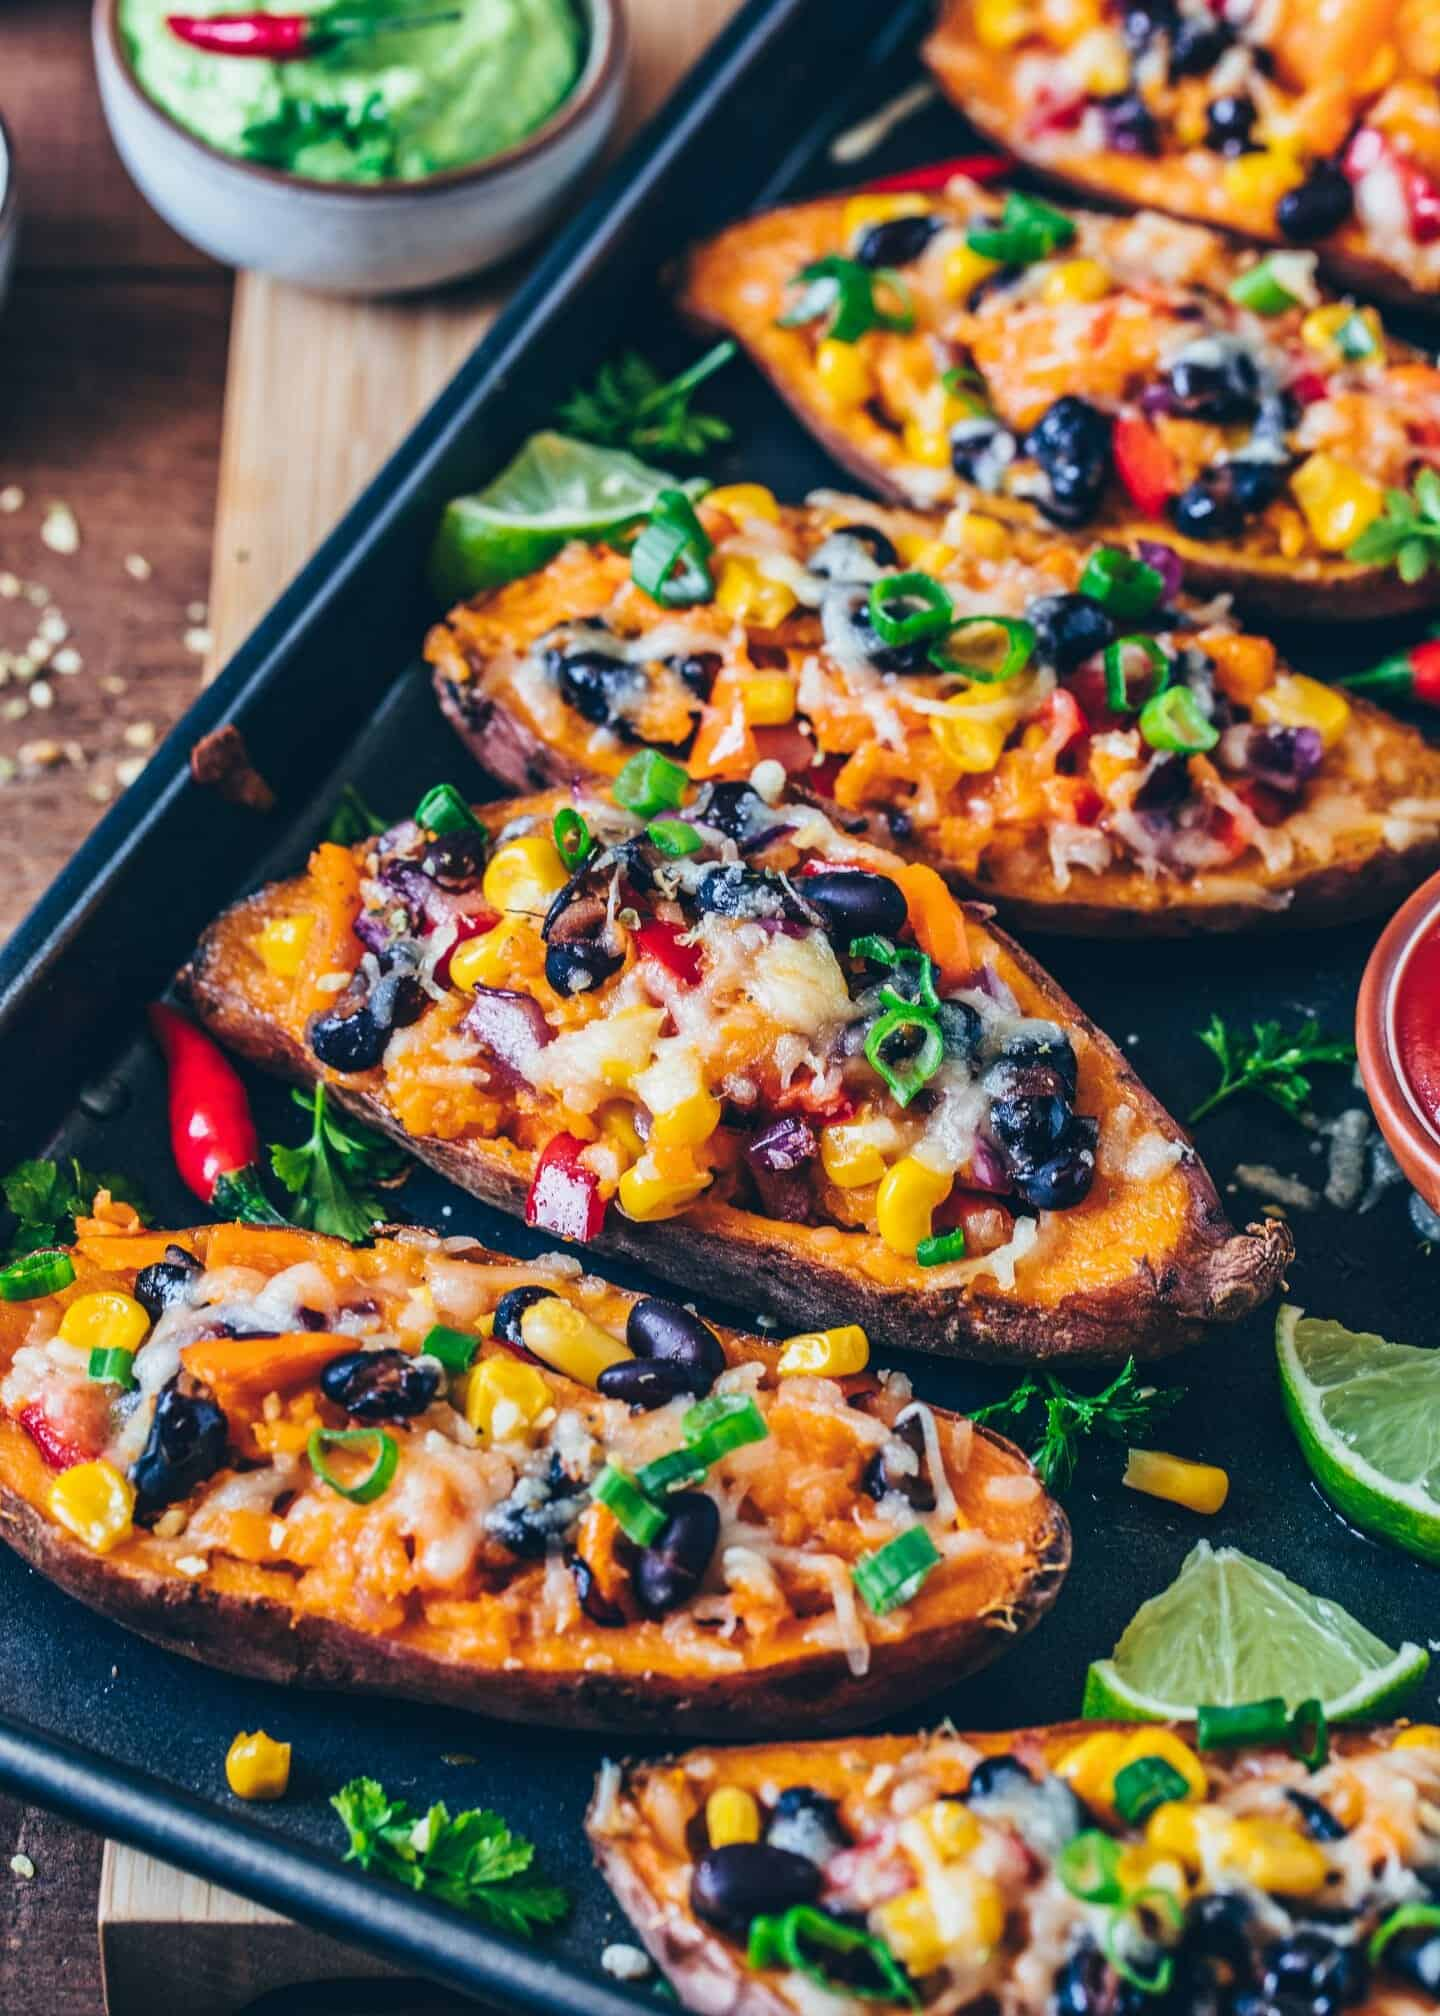 Mexican Sweet Potato Skins stuffed with black beans, corn, pepper, and vegan cheese. Serve with homemade avocado aioli for a tasty, easy and healthy meal. How to make baked potatoes. Step-by-step Recipe. Dairy-free, gluten-free.